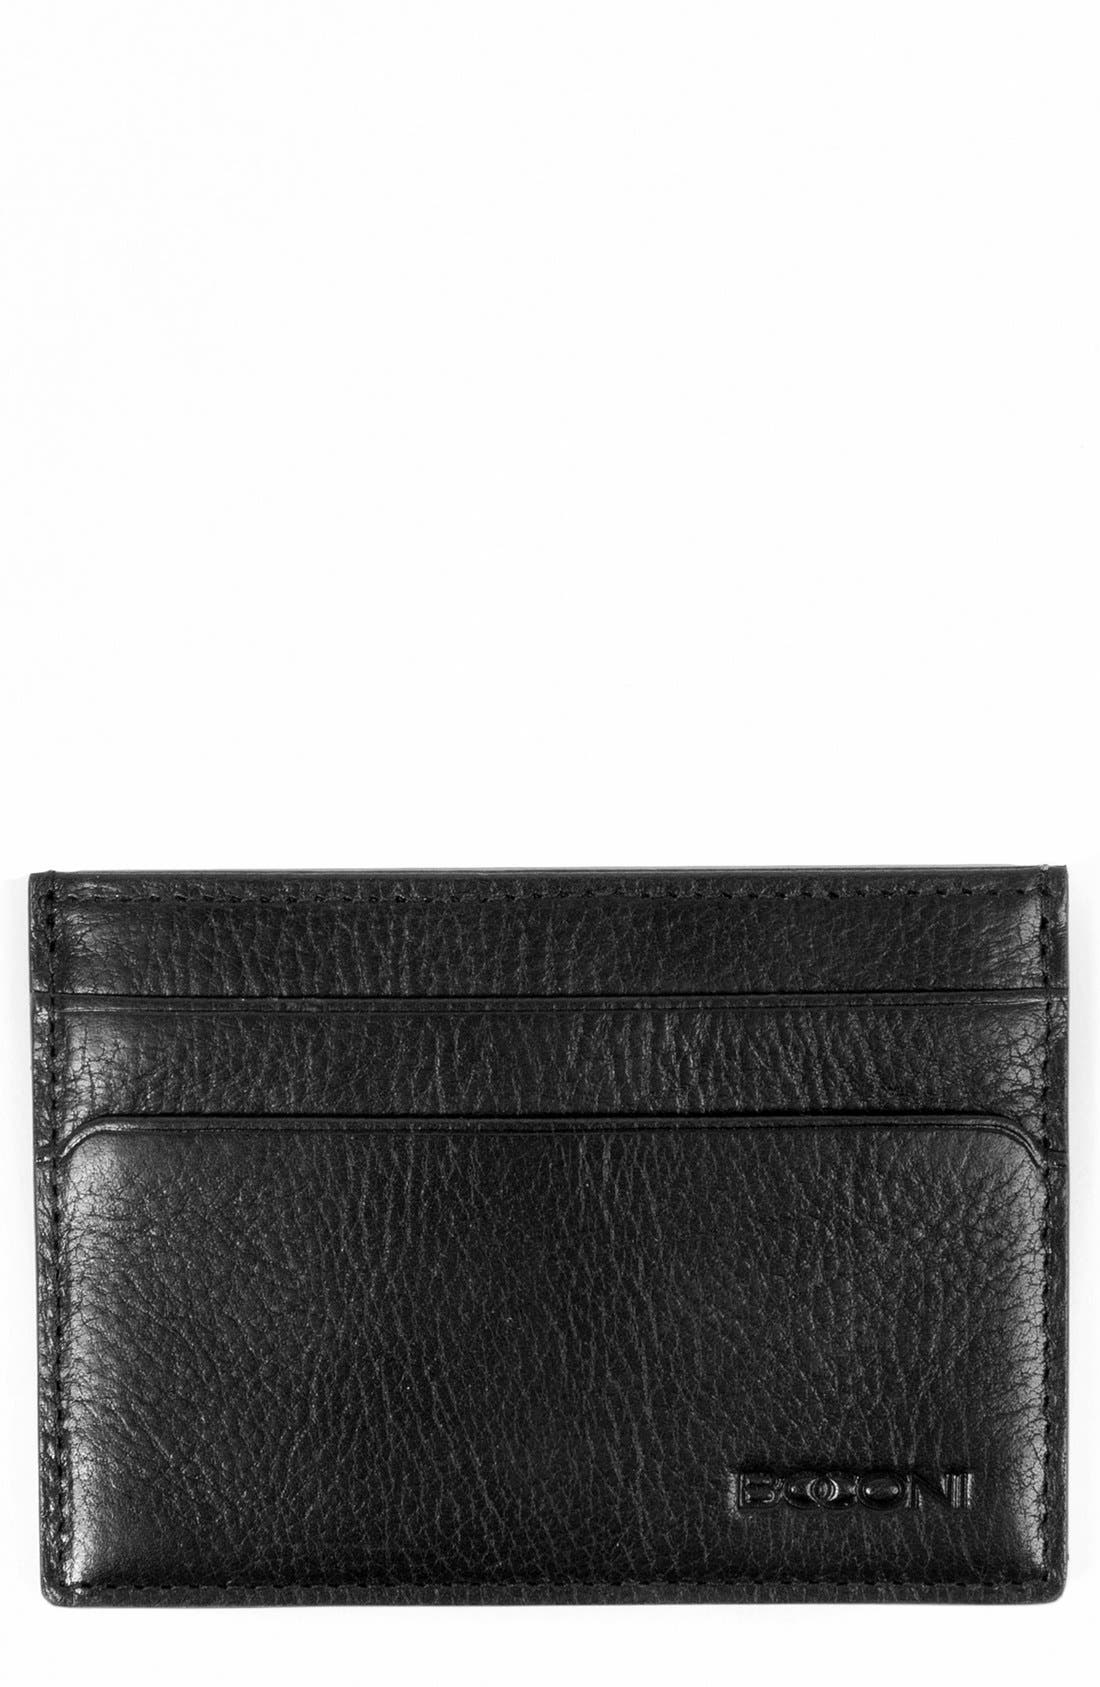 Main Image - Boconi 'Becker' RFID Leather Card Case